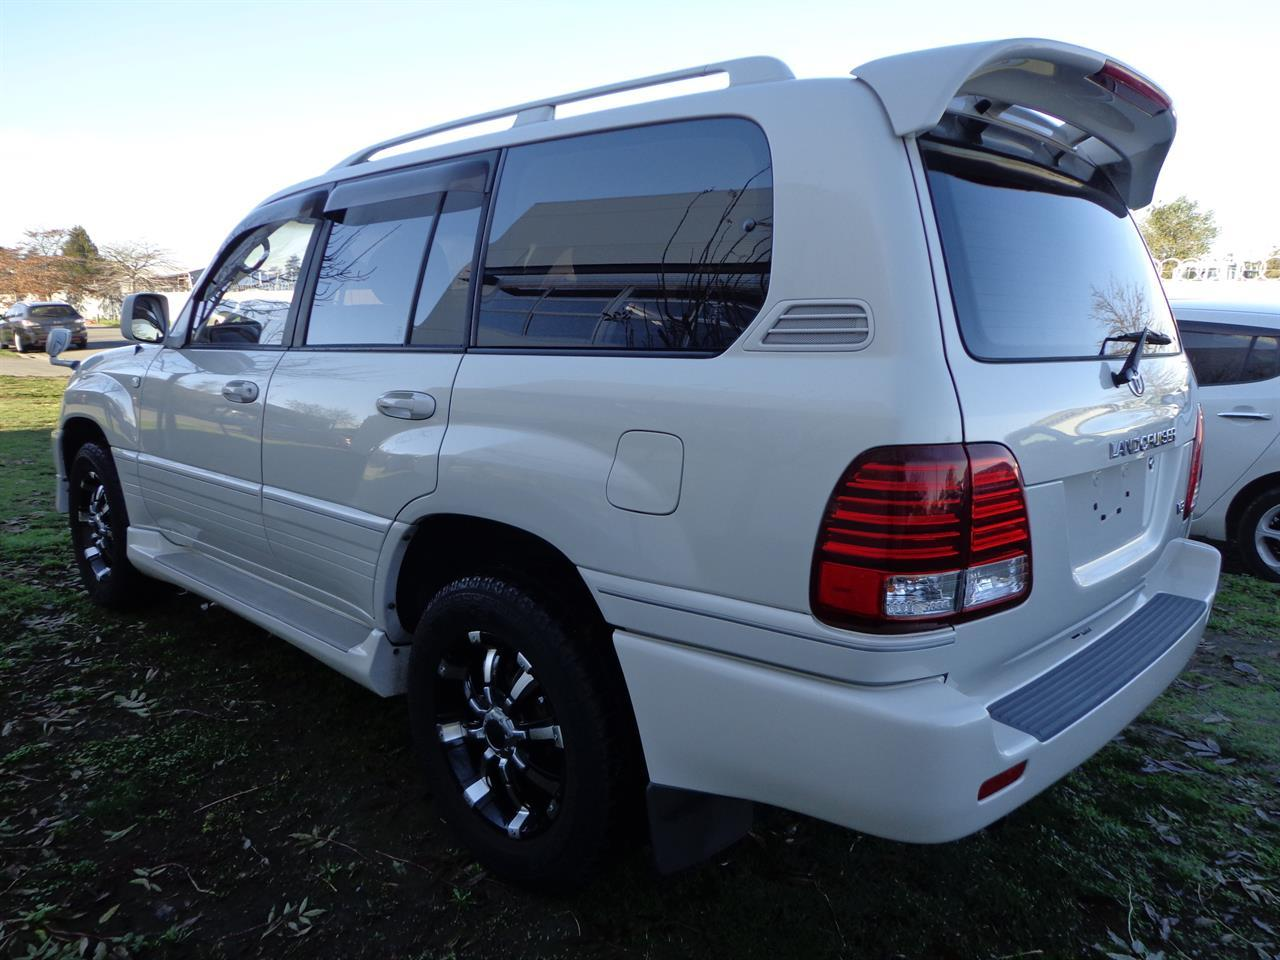 image-5, 2000 Toyota Land Cruiser 100 VX Limited G Selectio at Christchurch